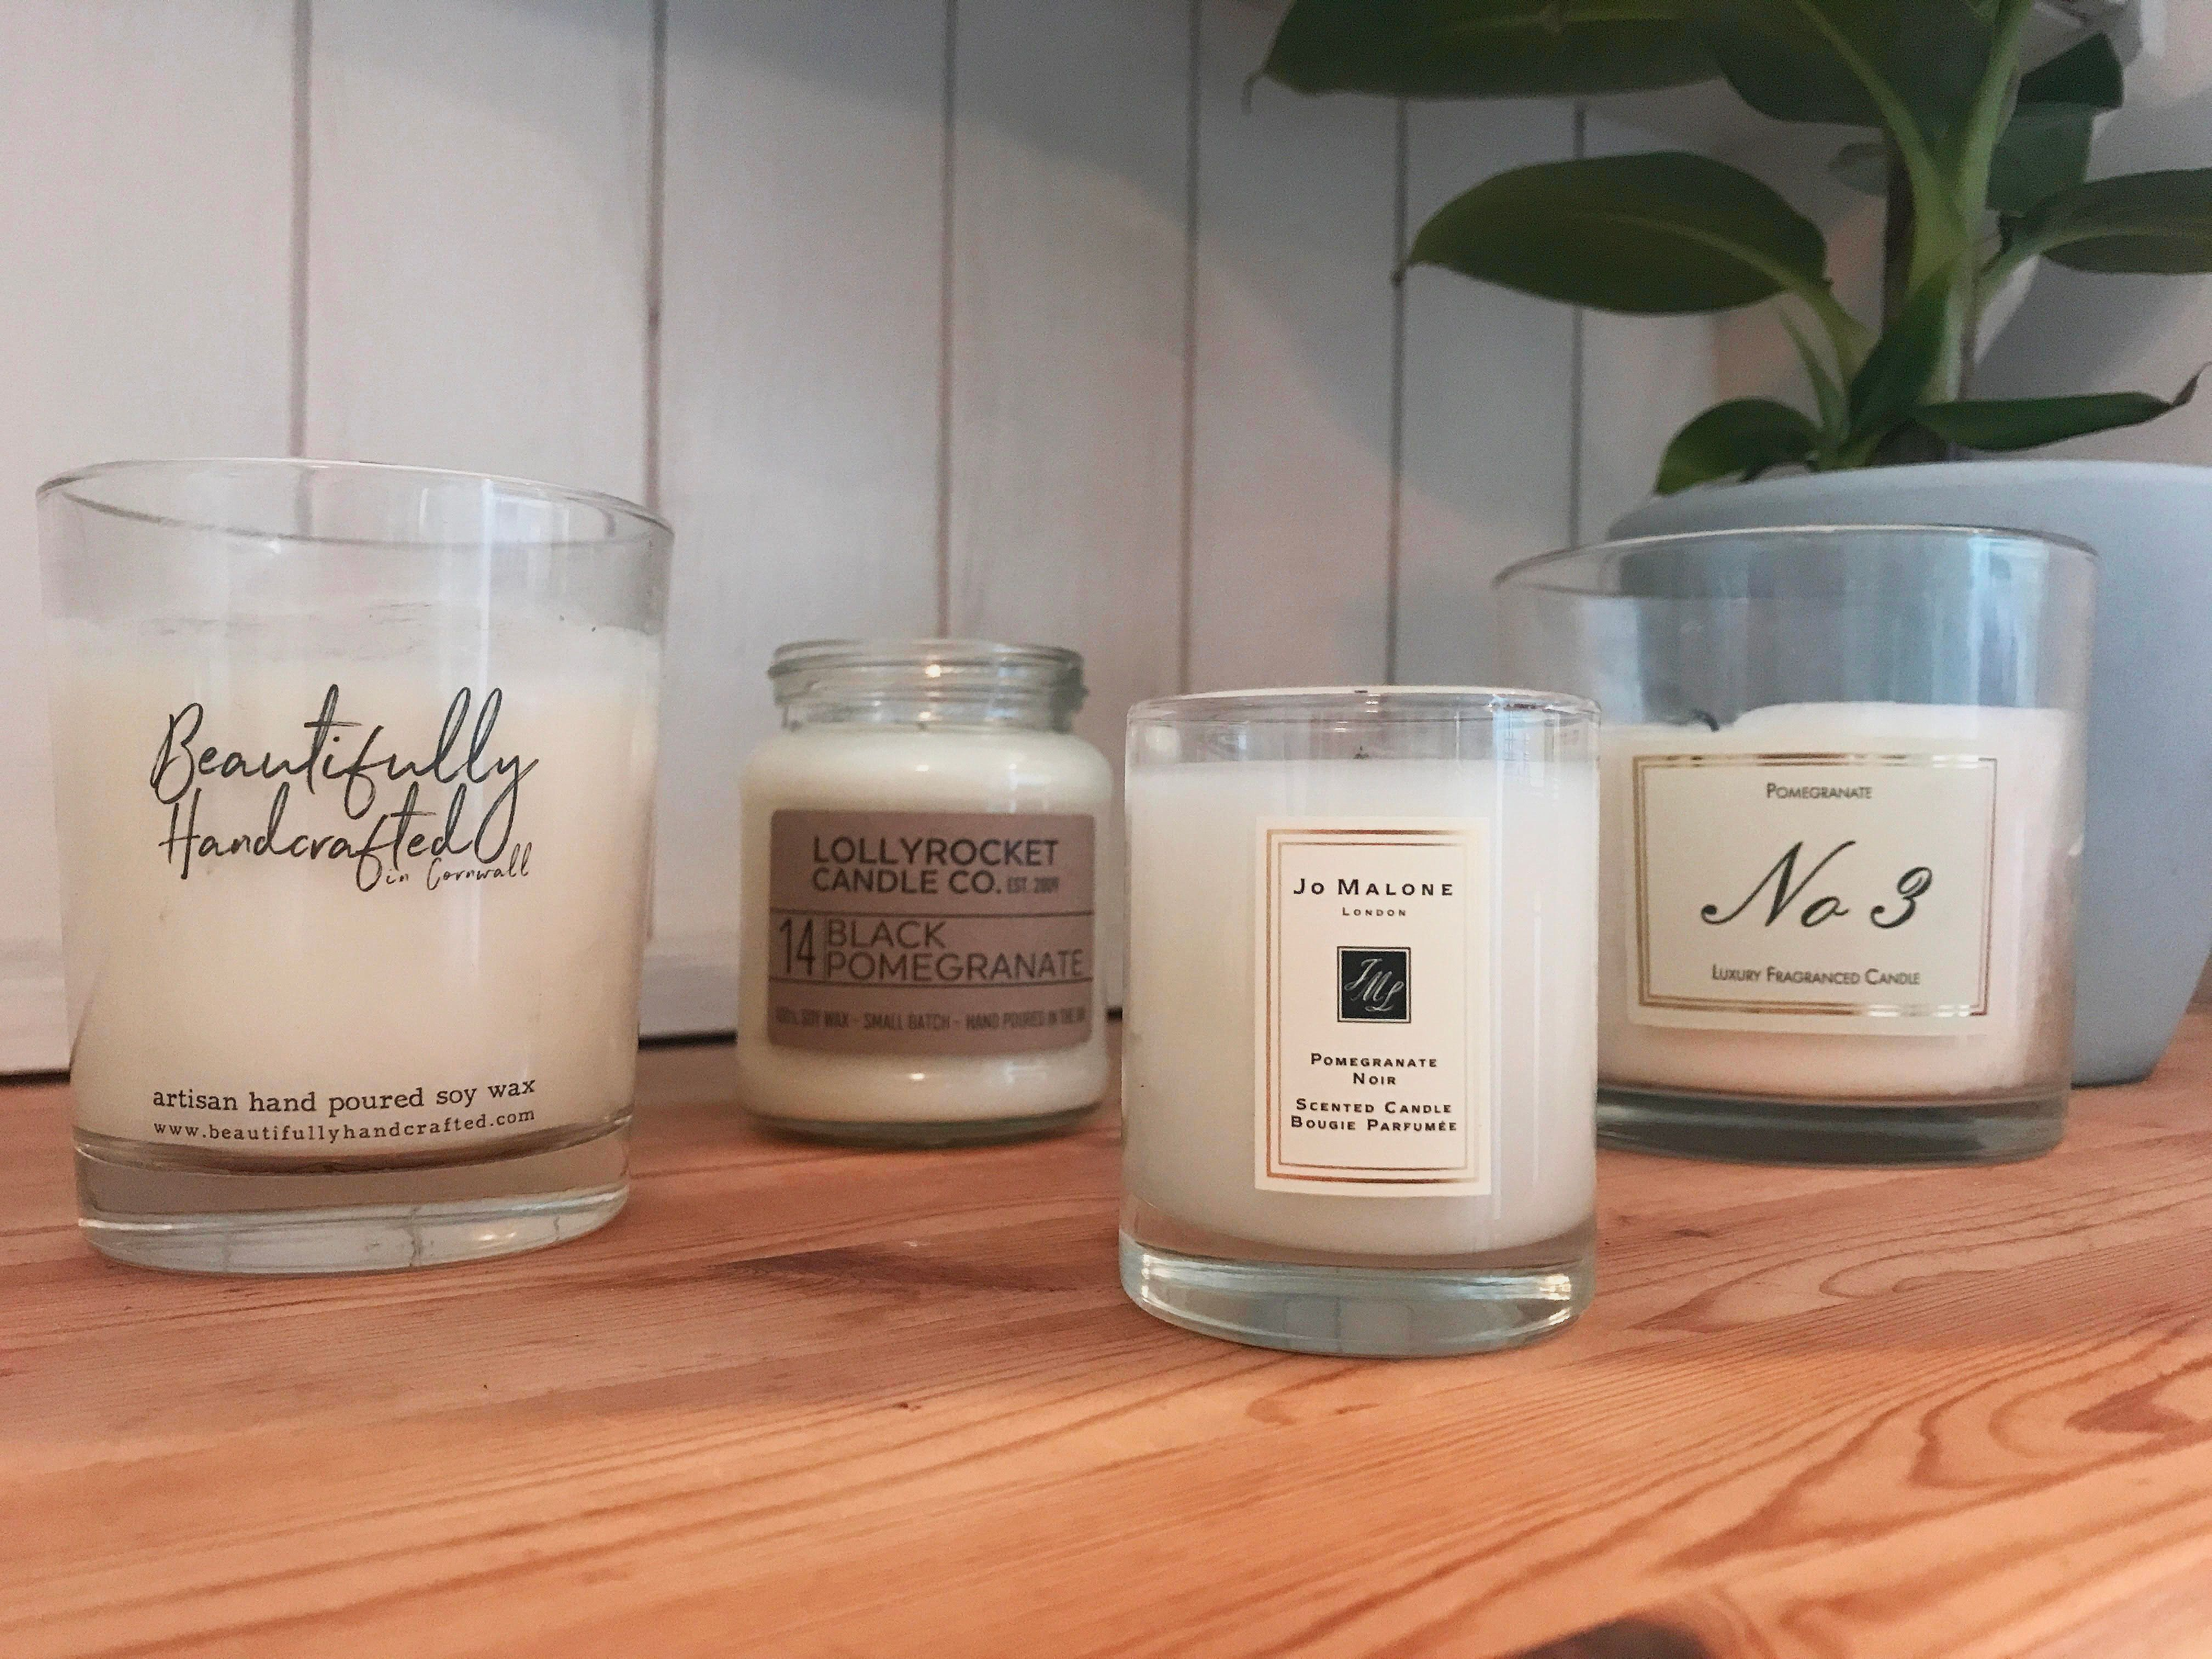 From left to right: candles from Etsy, Not On The High Street, Jo Malone and